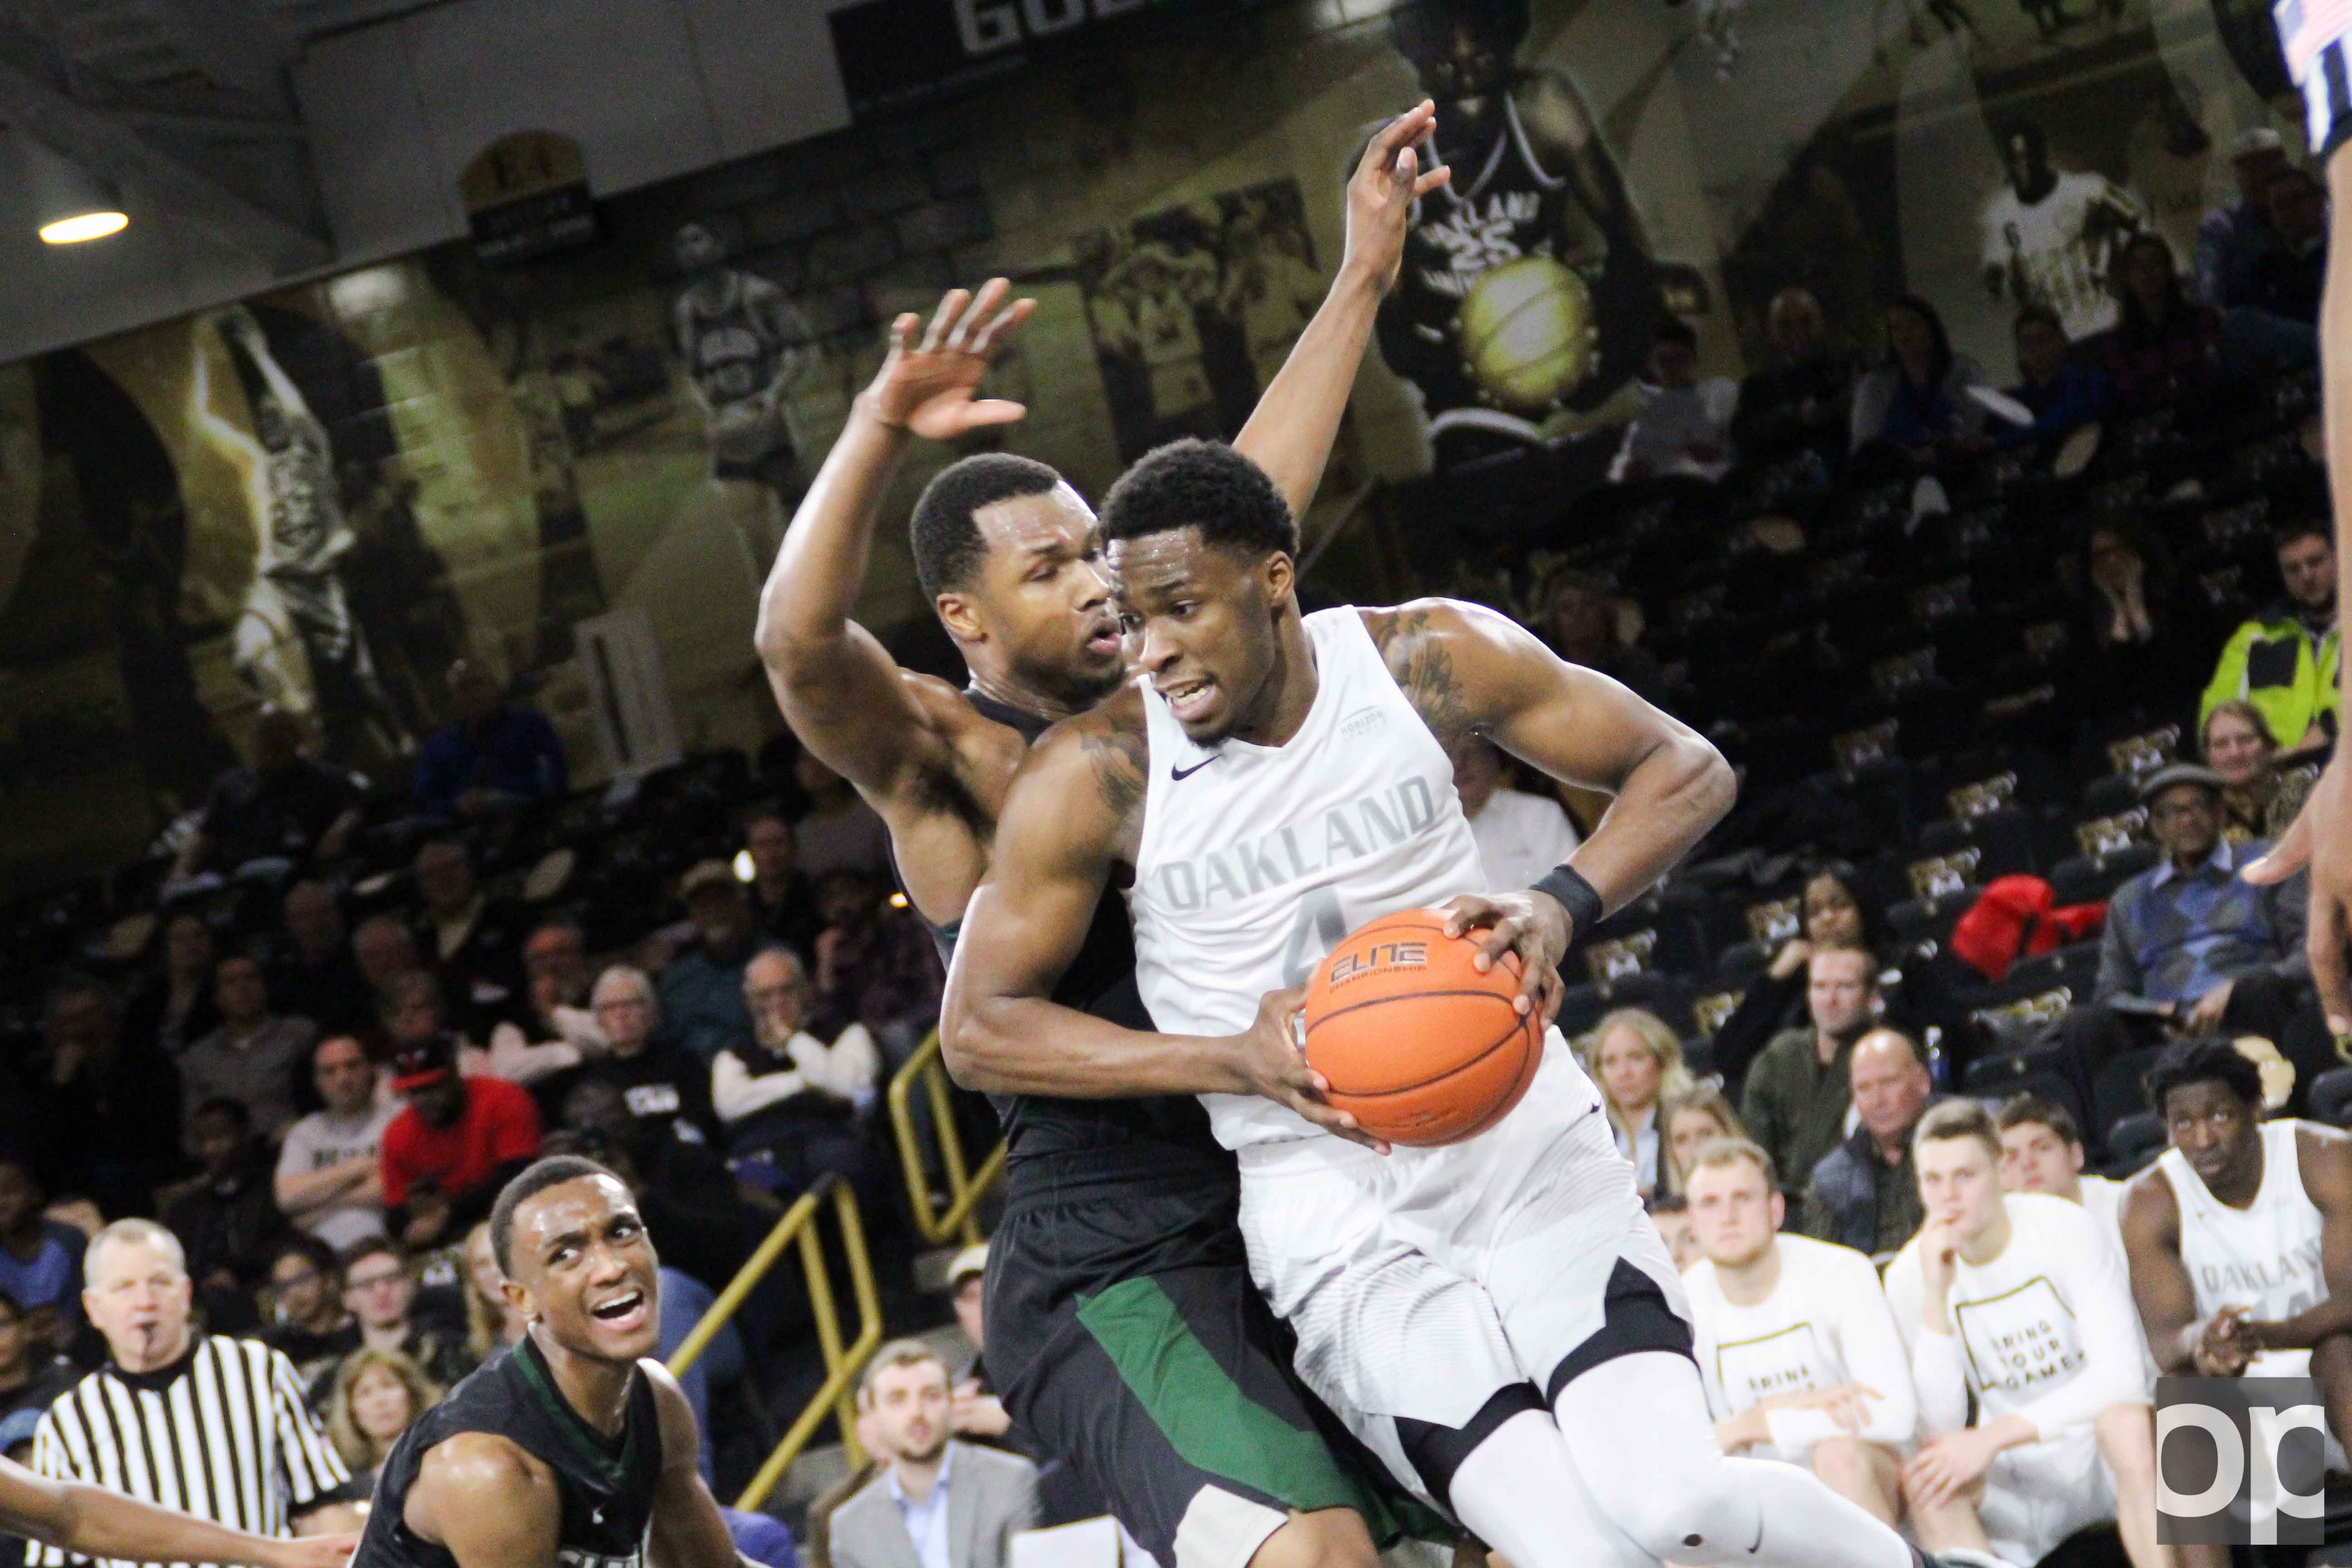 With 25 points for the Golden Grizzlies, Jalen Hayes recorded 1,000 career points Monday night at the O'rena.